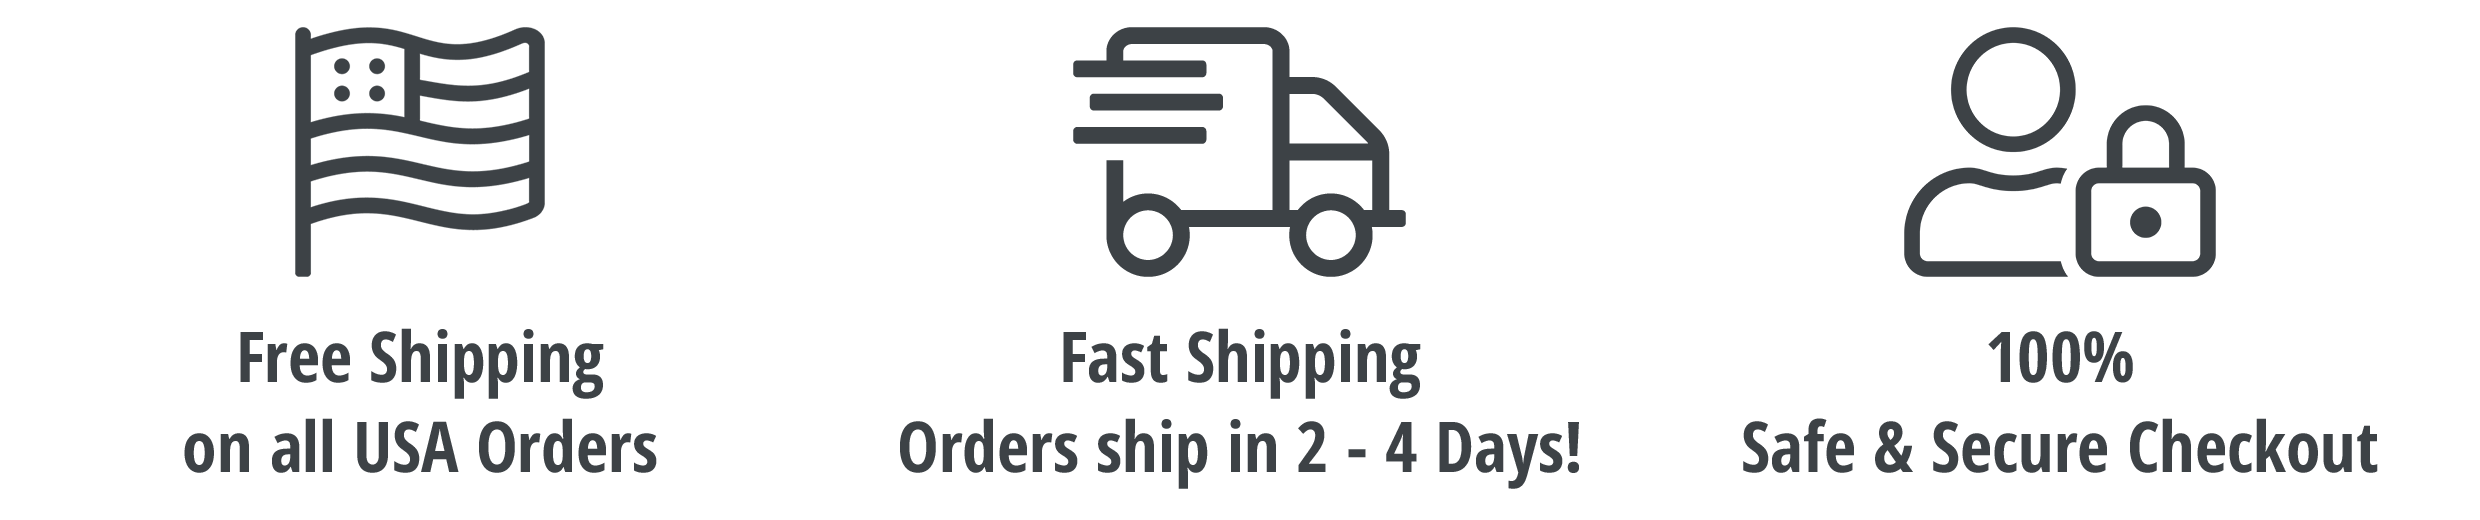 Free Shipping on all USA orders | Fast Shipping | 100% Safe and Secure Checkout